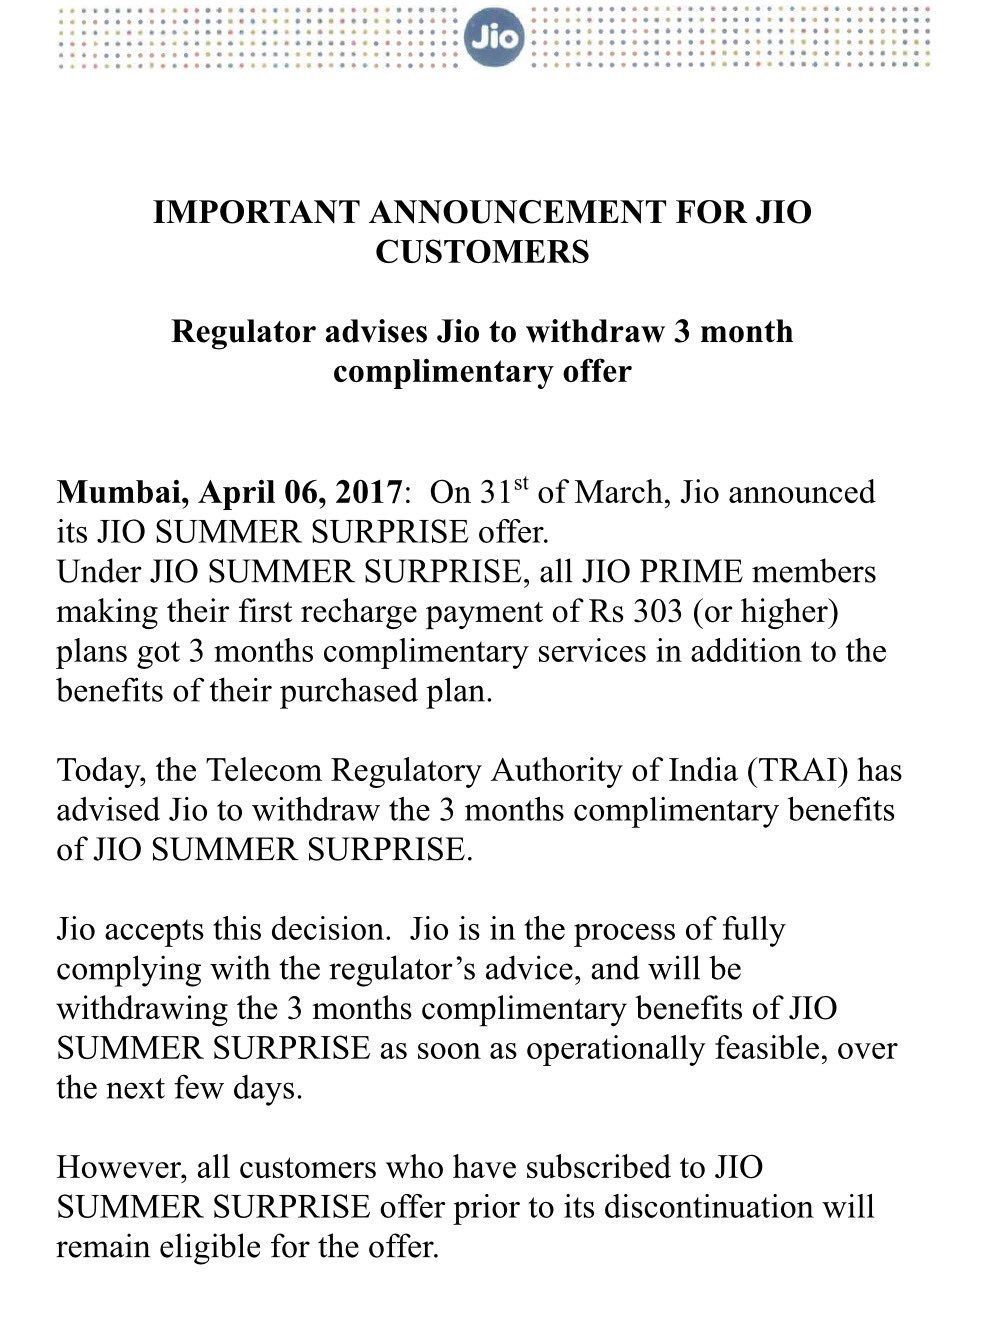 Jio Withdraws Summer Surprise Offer